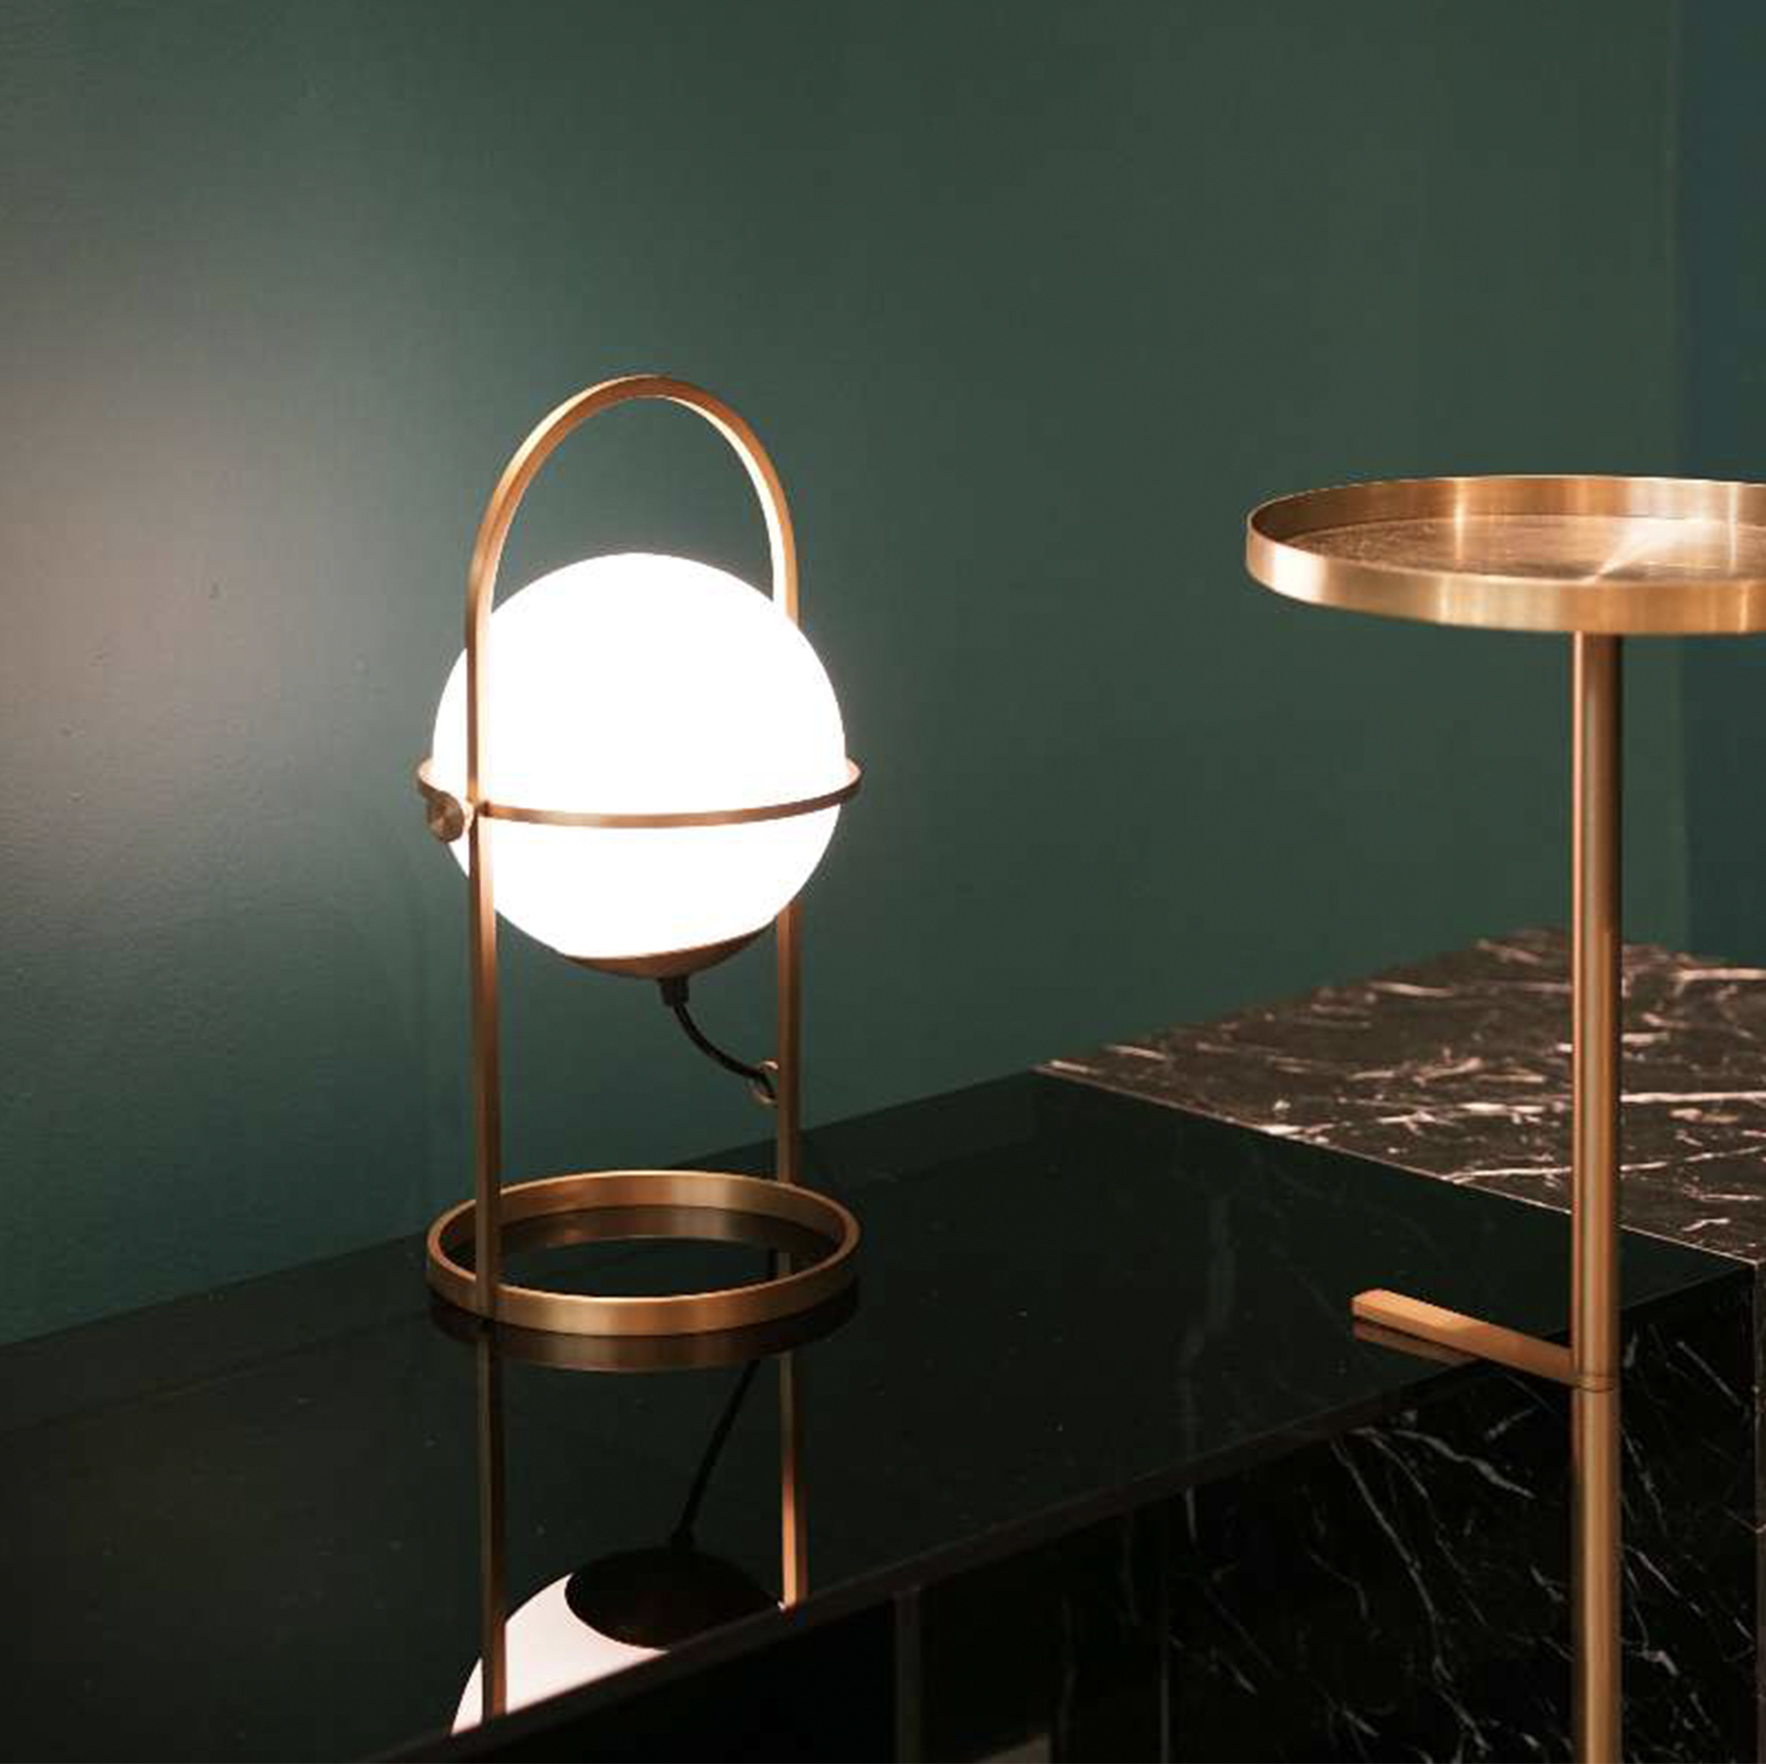 Incredible New Generation of Chinese Designers at Maison et Objet 2019 - Ximi Li - YUAN table lamp maison et objet 2019 Incredible New Generation of Chinese Designers at Maison et Objet 2019 Incredible New Generation of Chinese Designers at Maison et Objet 2019 Ximi Li YUAN table lamp